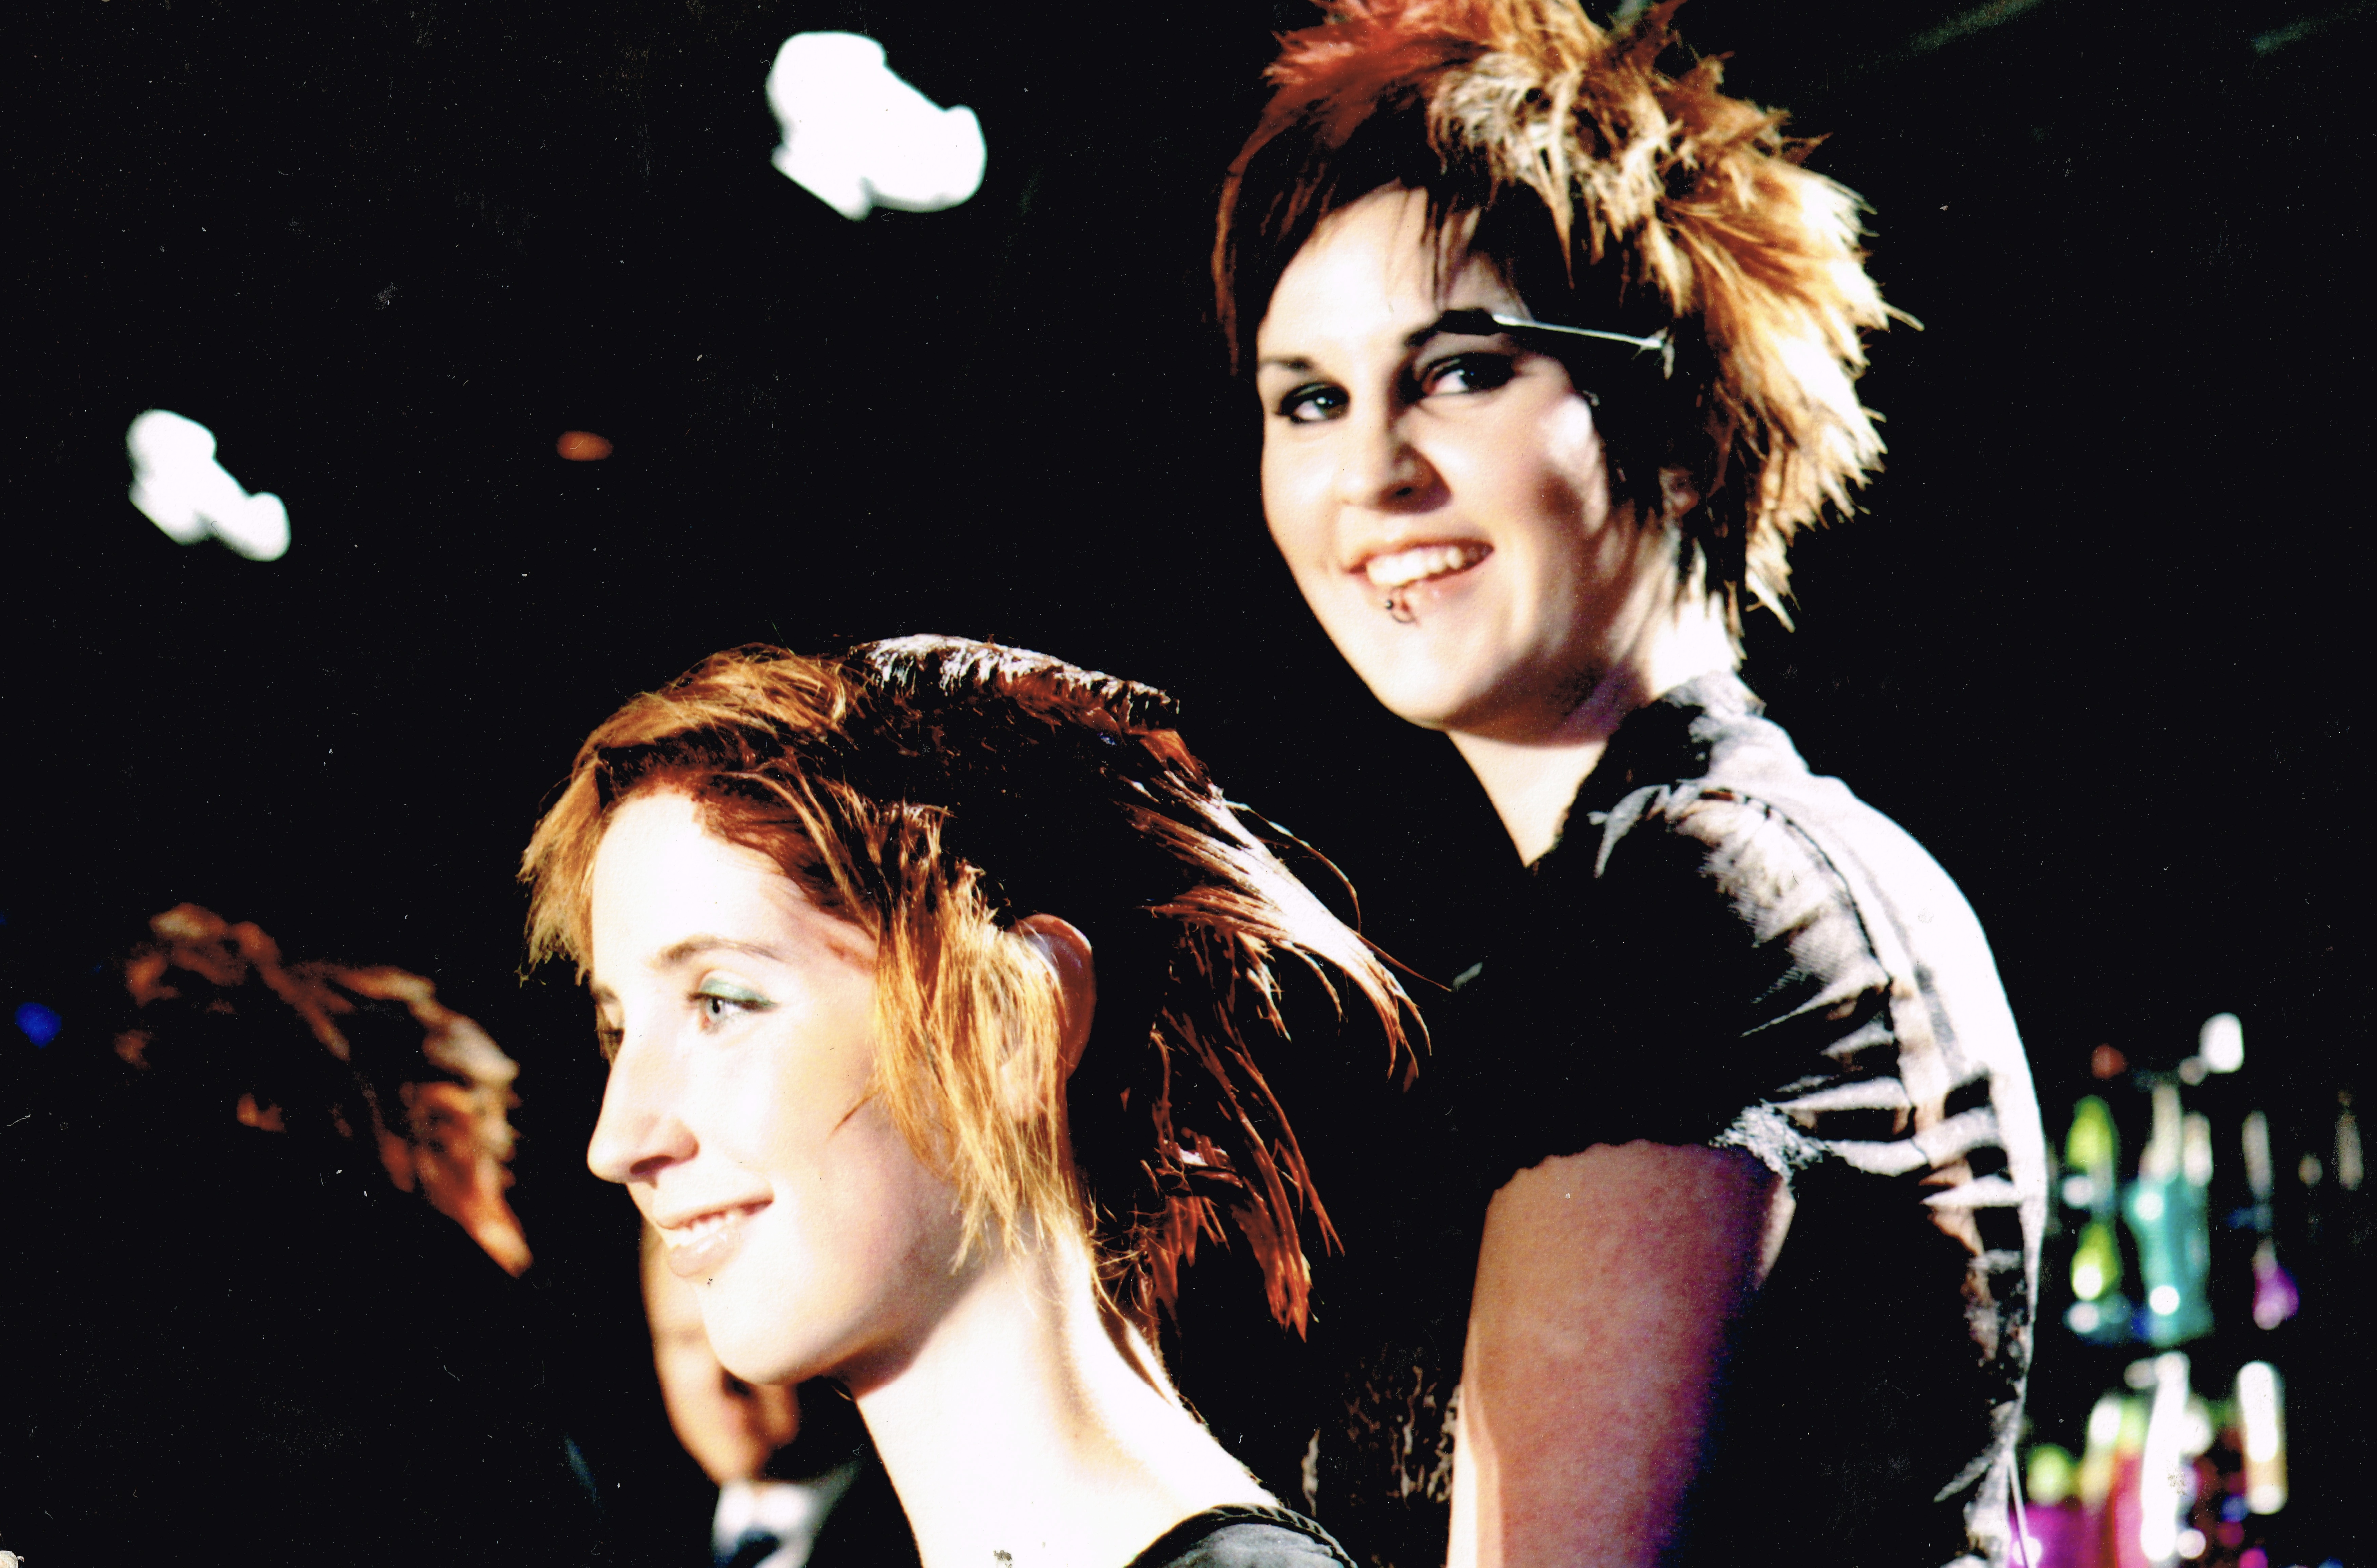 Sierra on stage in 2005 at a Toni & Guy Event